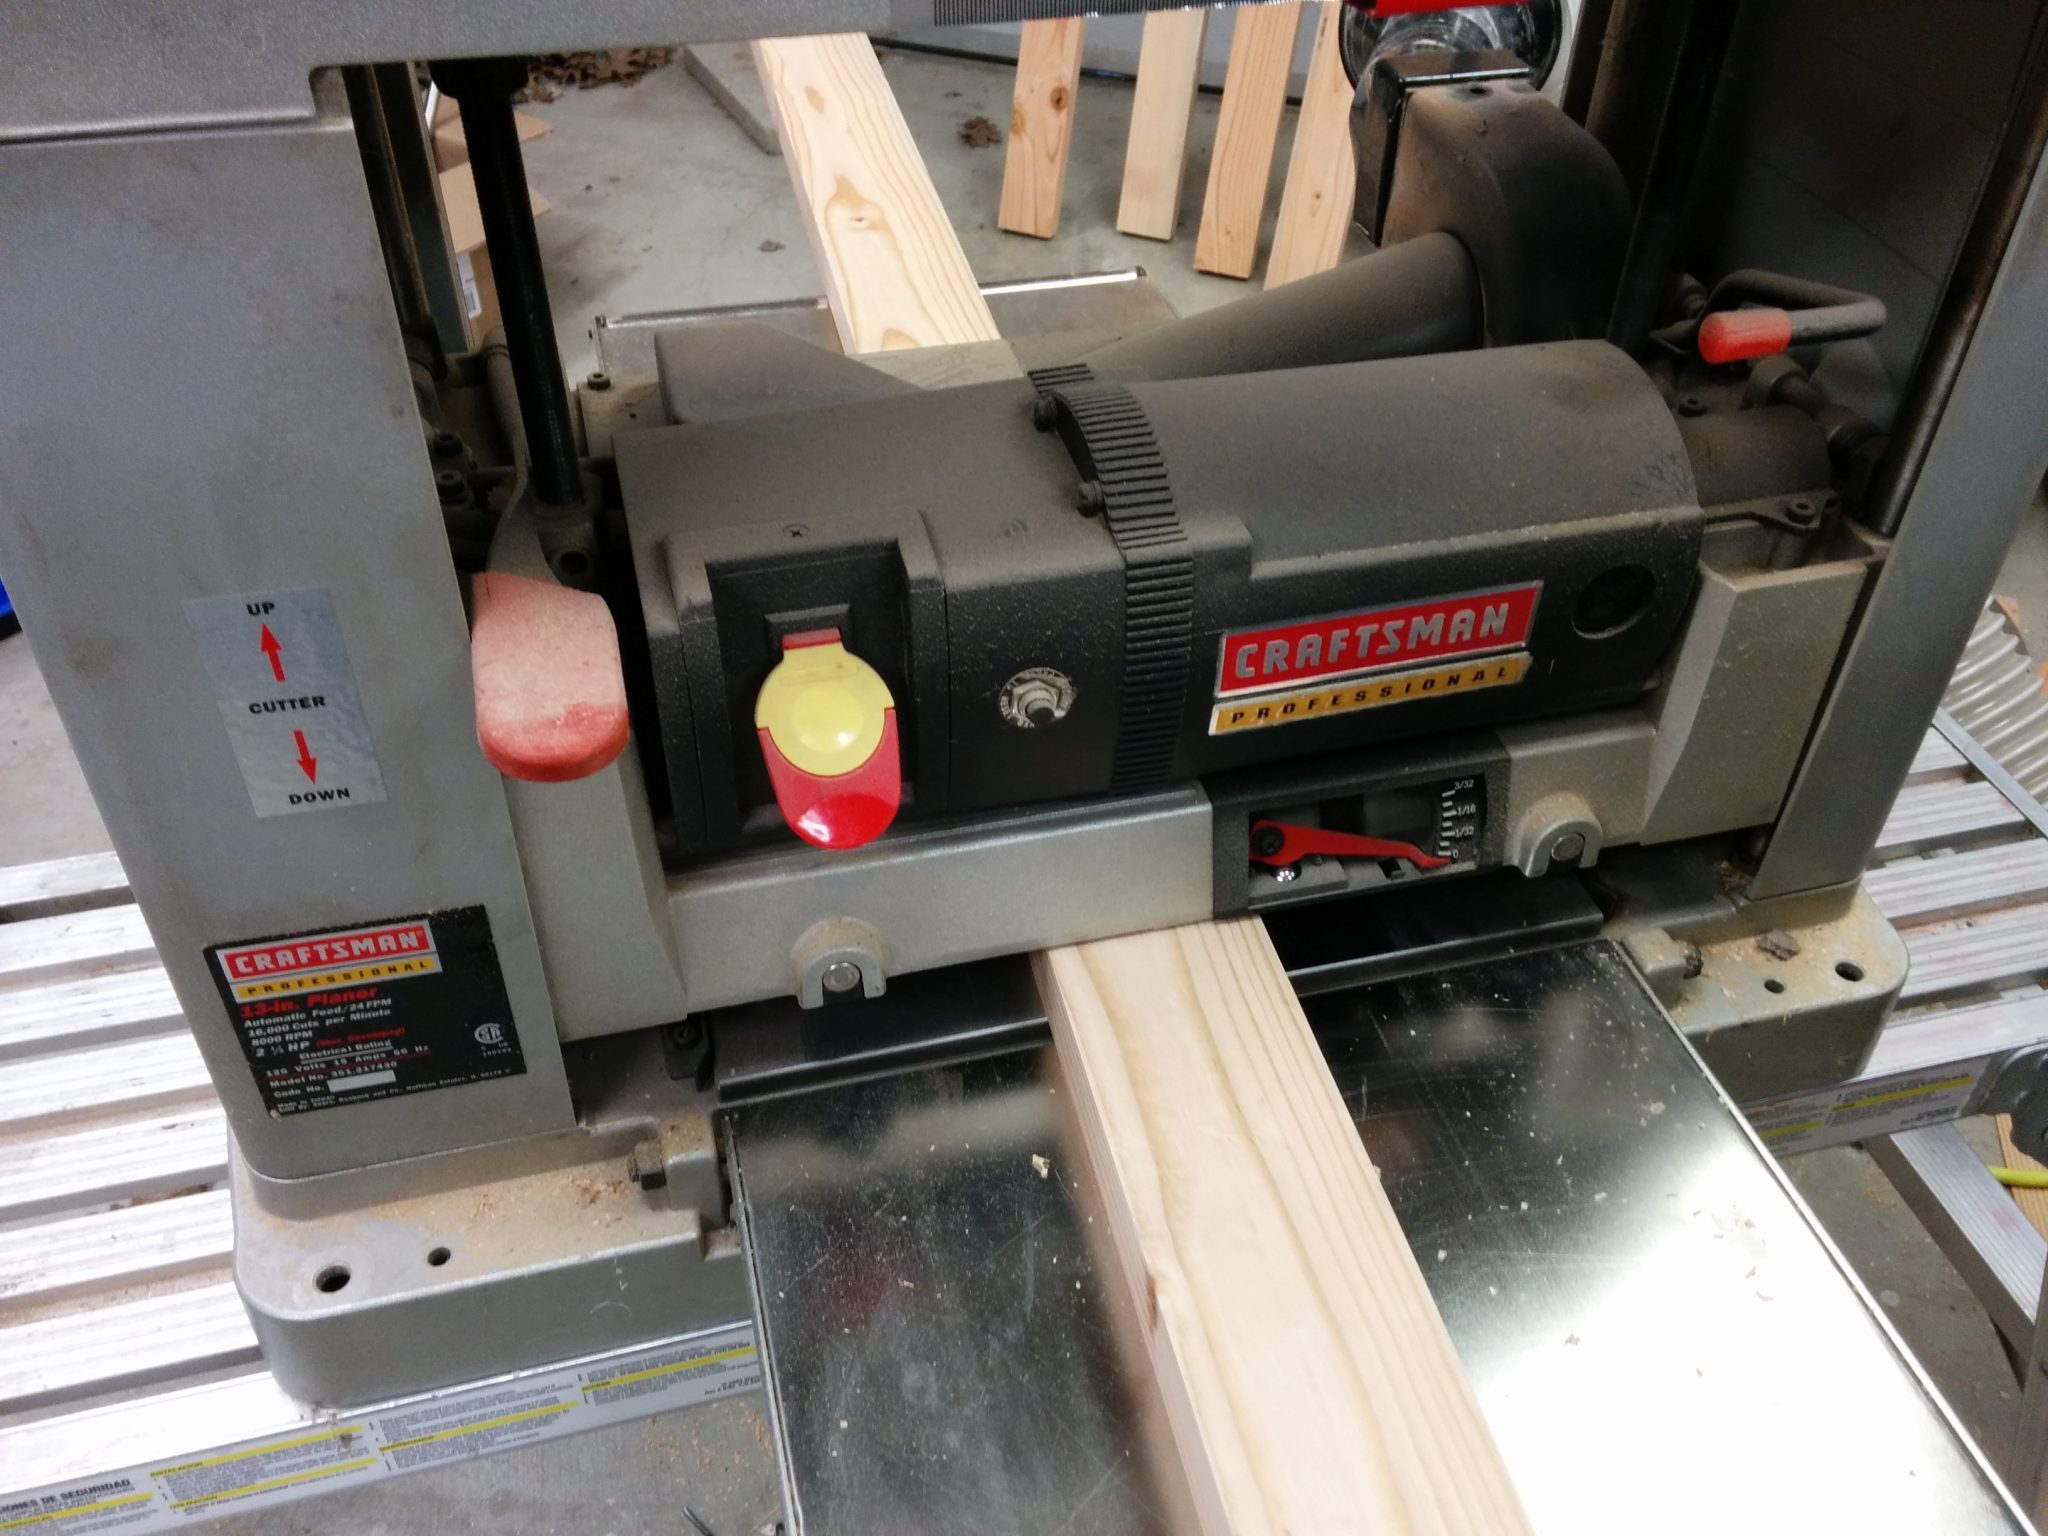 Milling the 4th side on the planer.